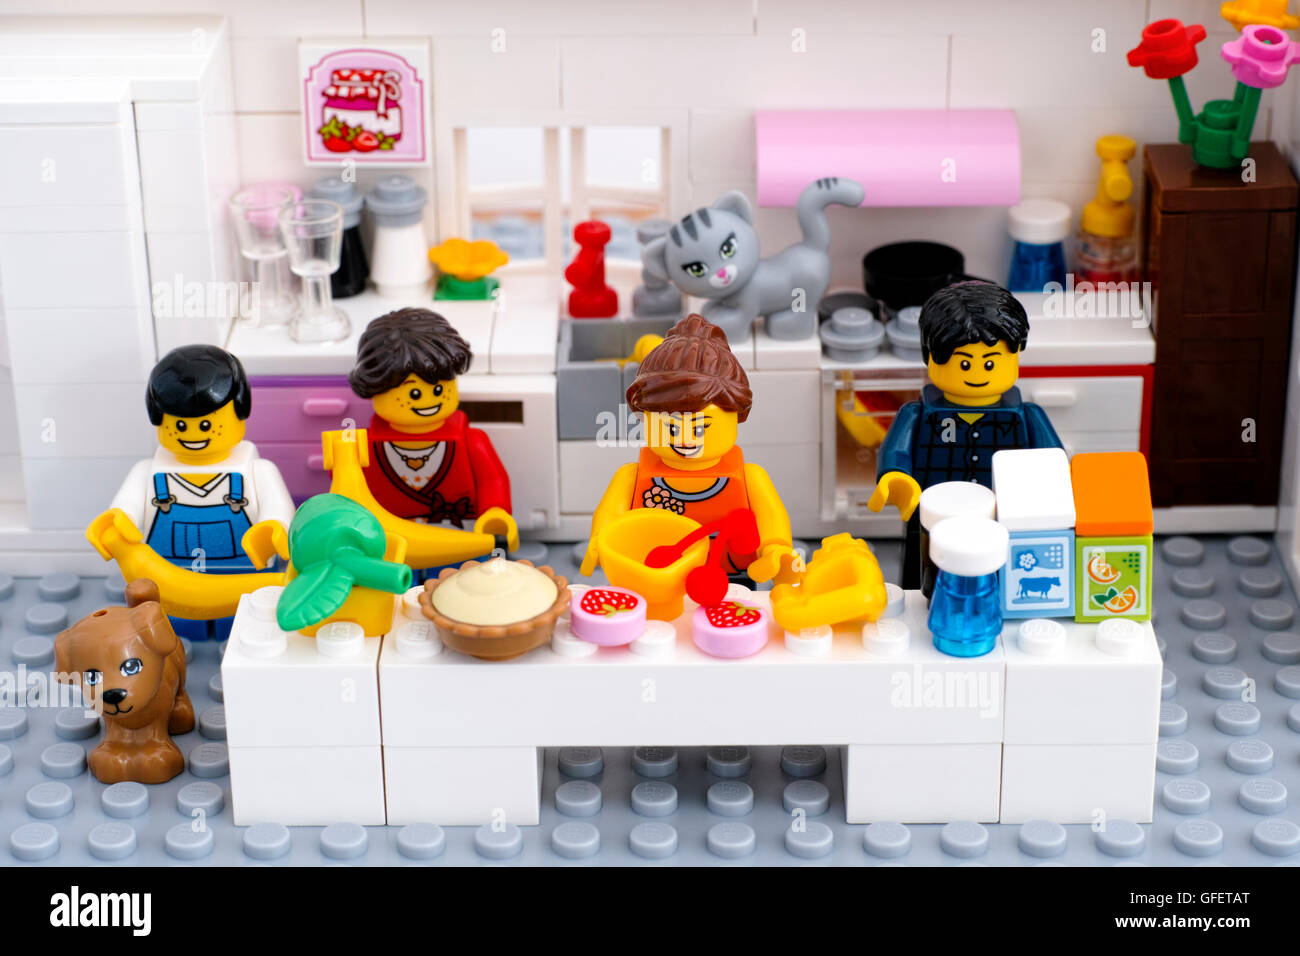 Tambov, Russian Federation - August 29, 2015 Lego family with pets in domestic kitchen. Woman is cooking dessert. - Stock Image